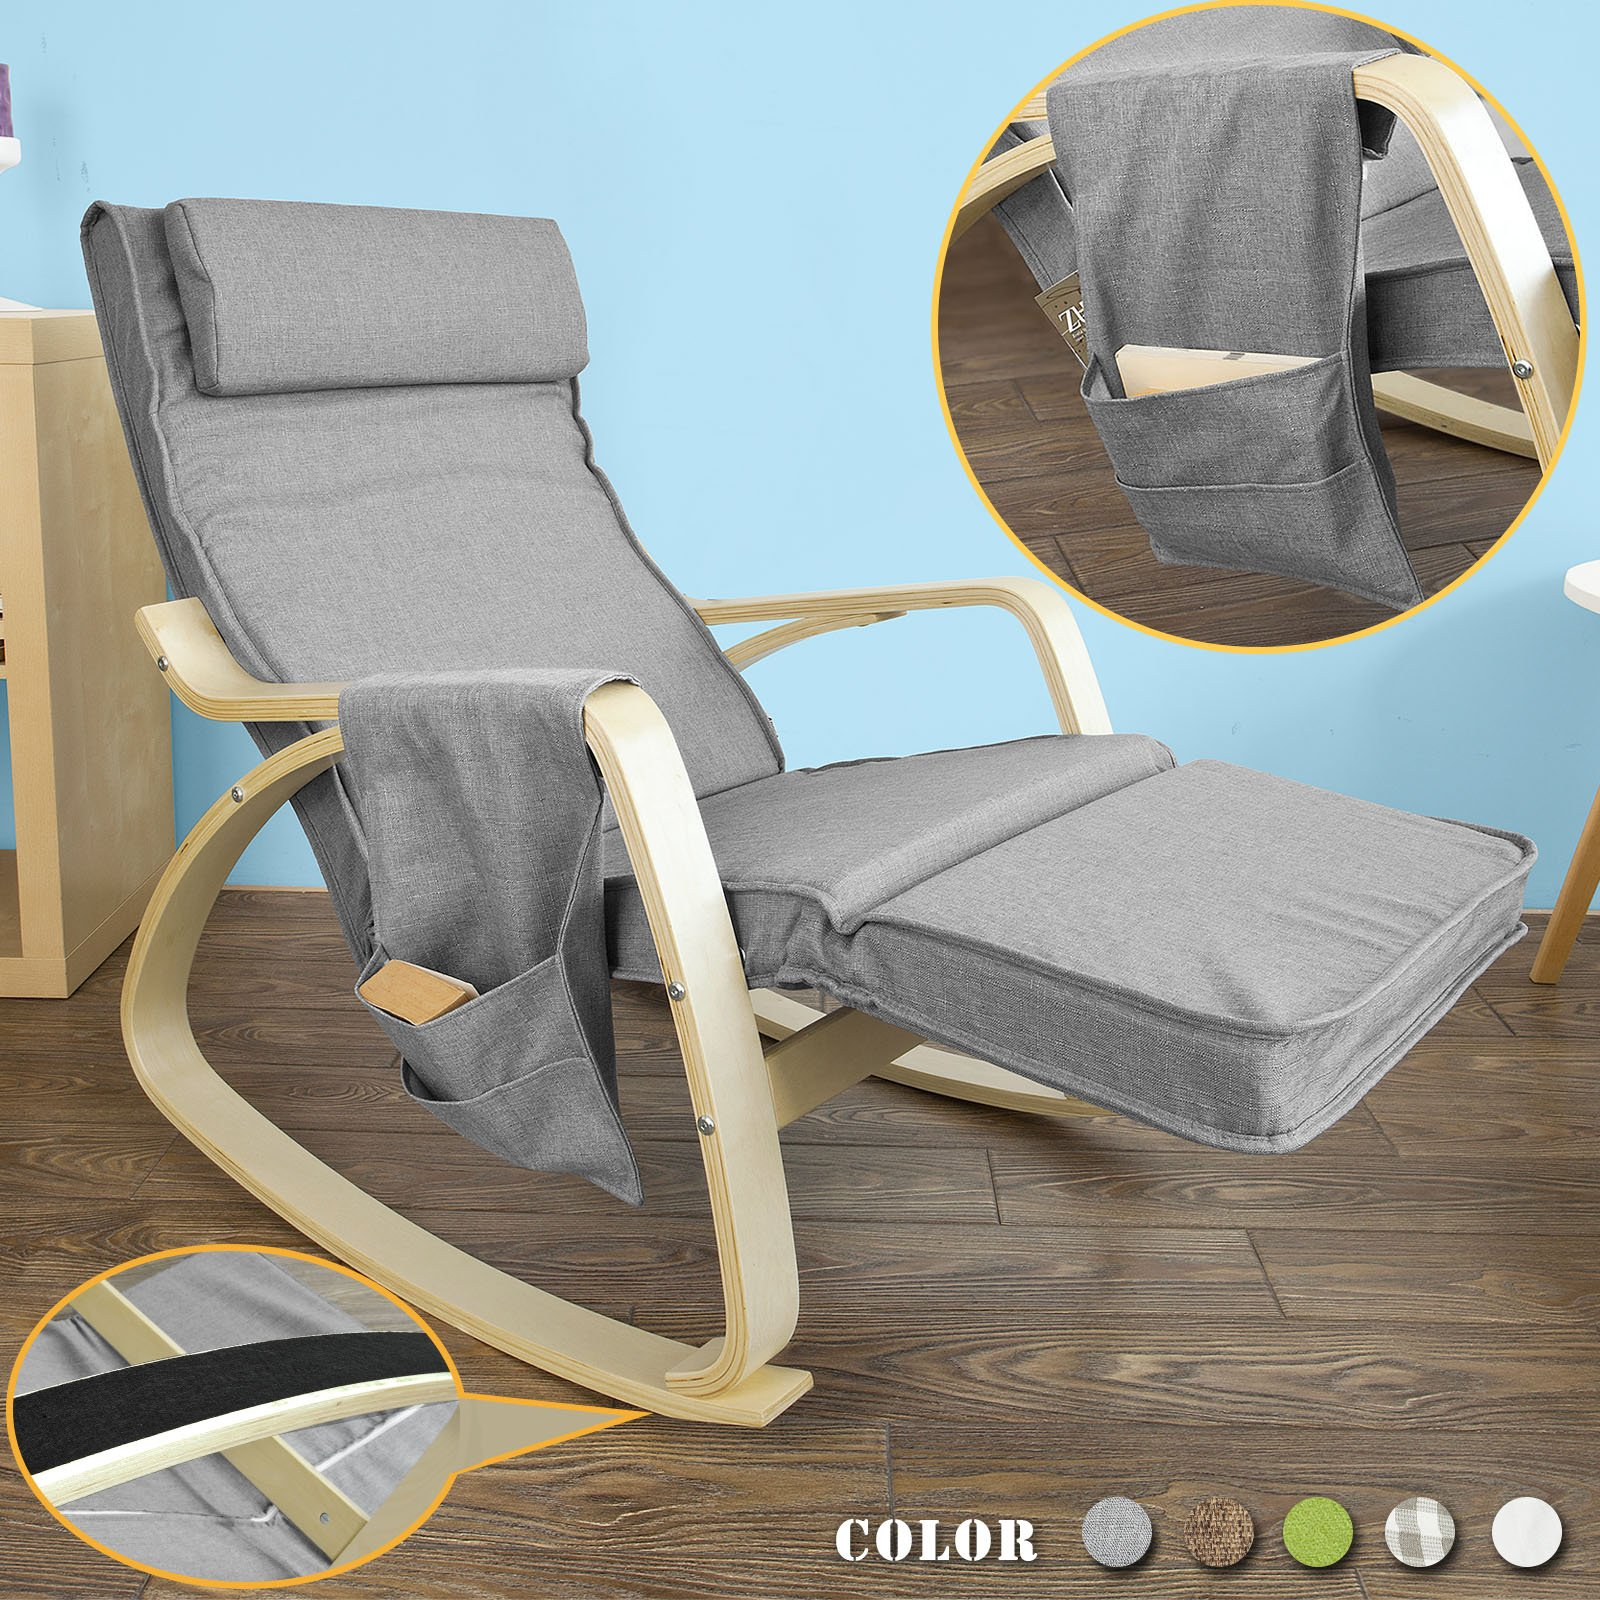 Haotian FST18-DG, Comfortable Relax Rocking Chair, Lounge Chair Recliners with Adjustable Footrest & Side Pocket by Haotian